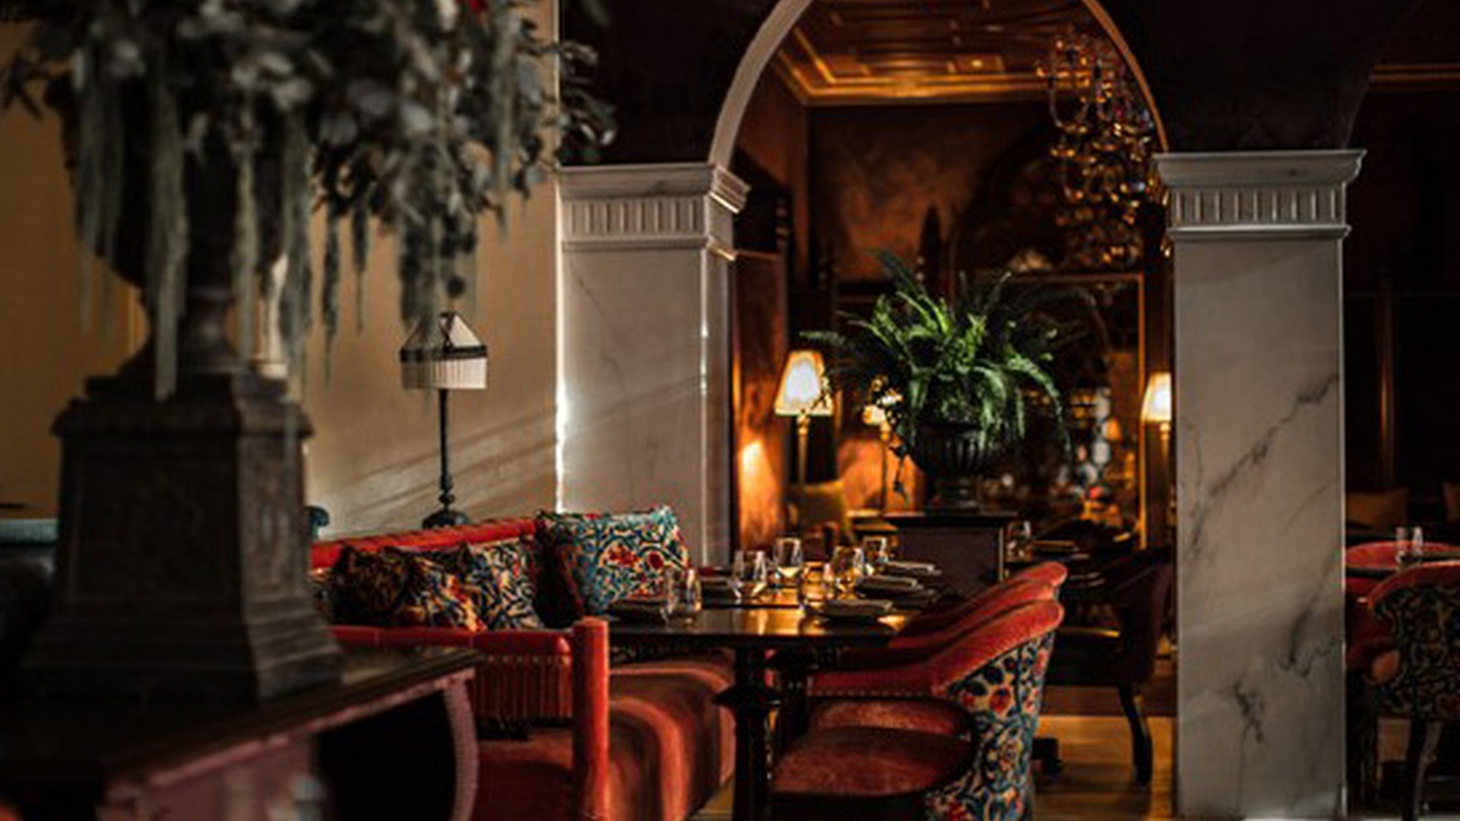 Interior decor at The NoMad Hotel and restaurant.